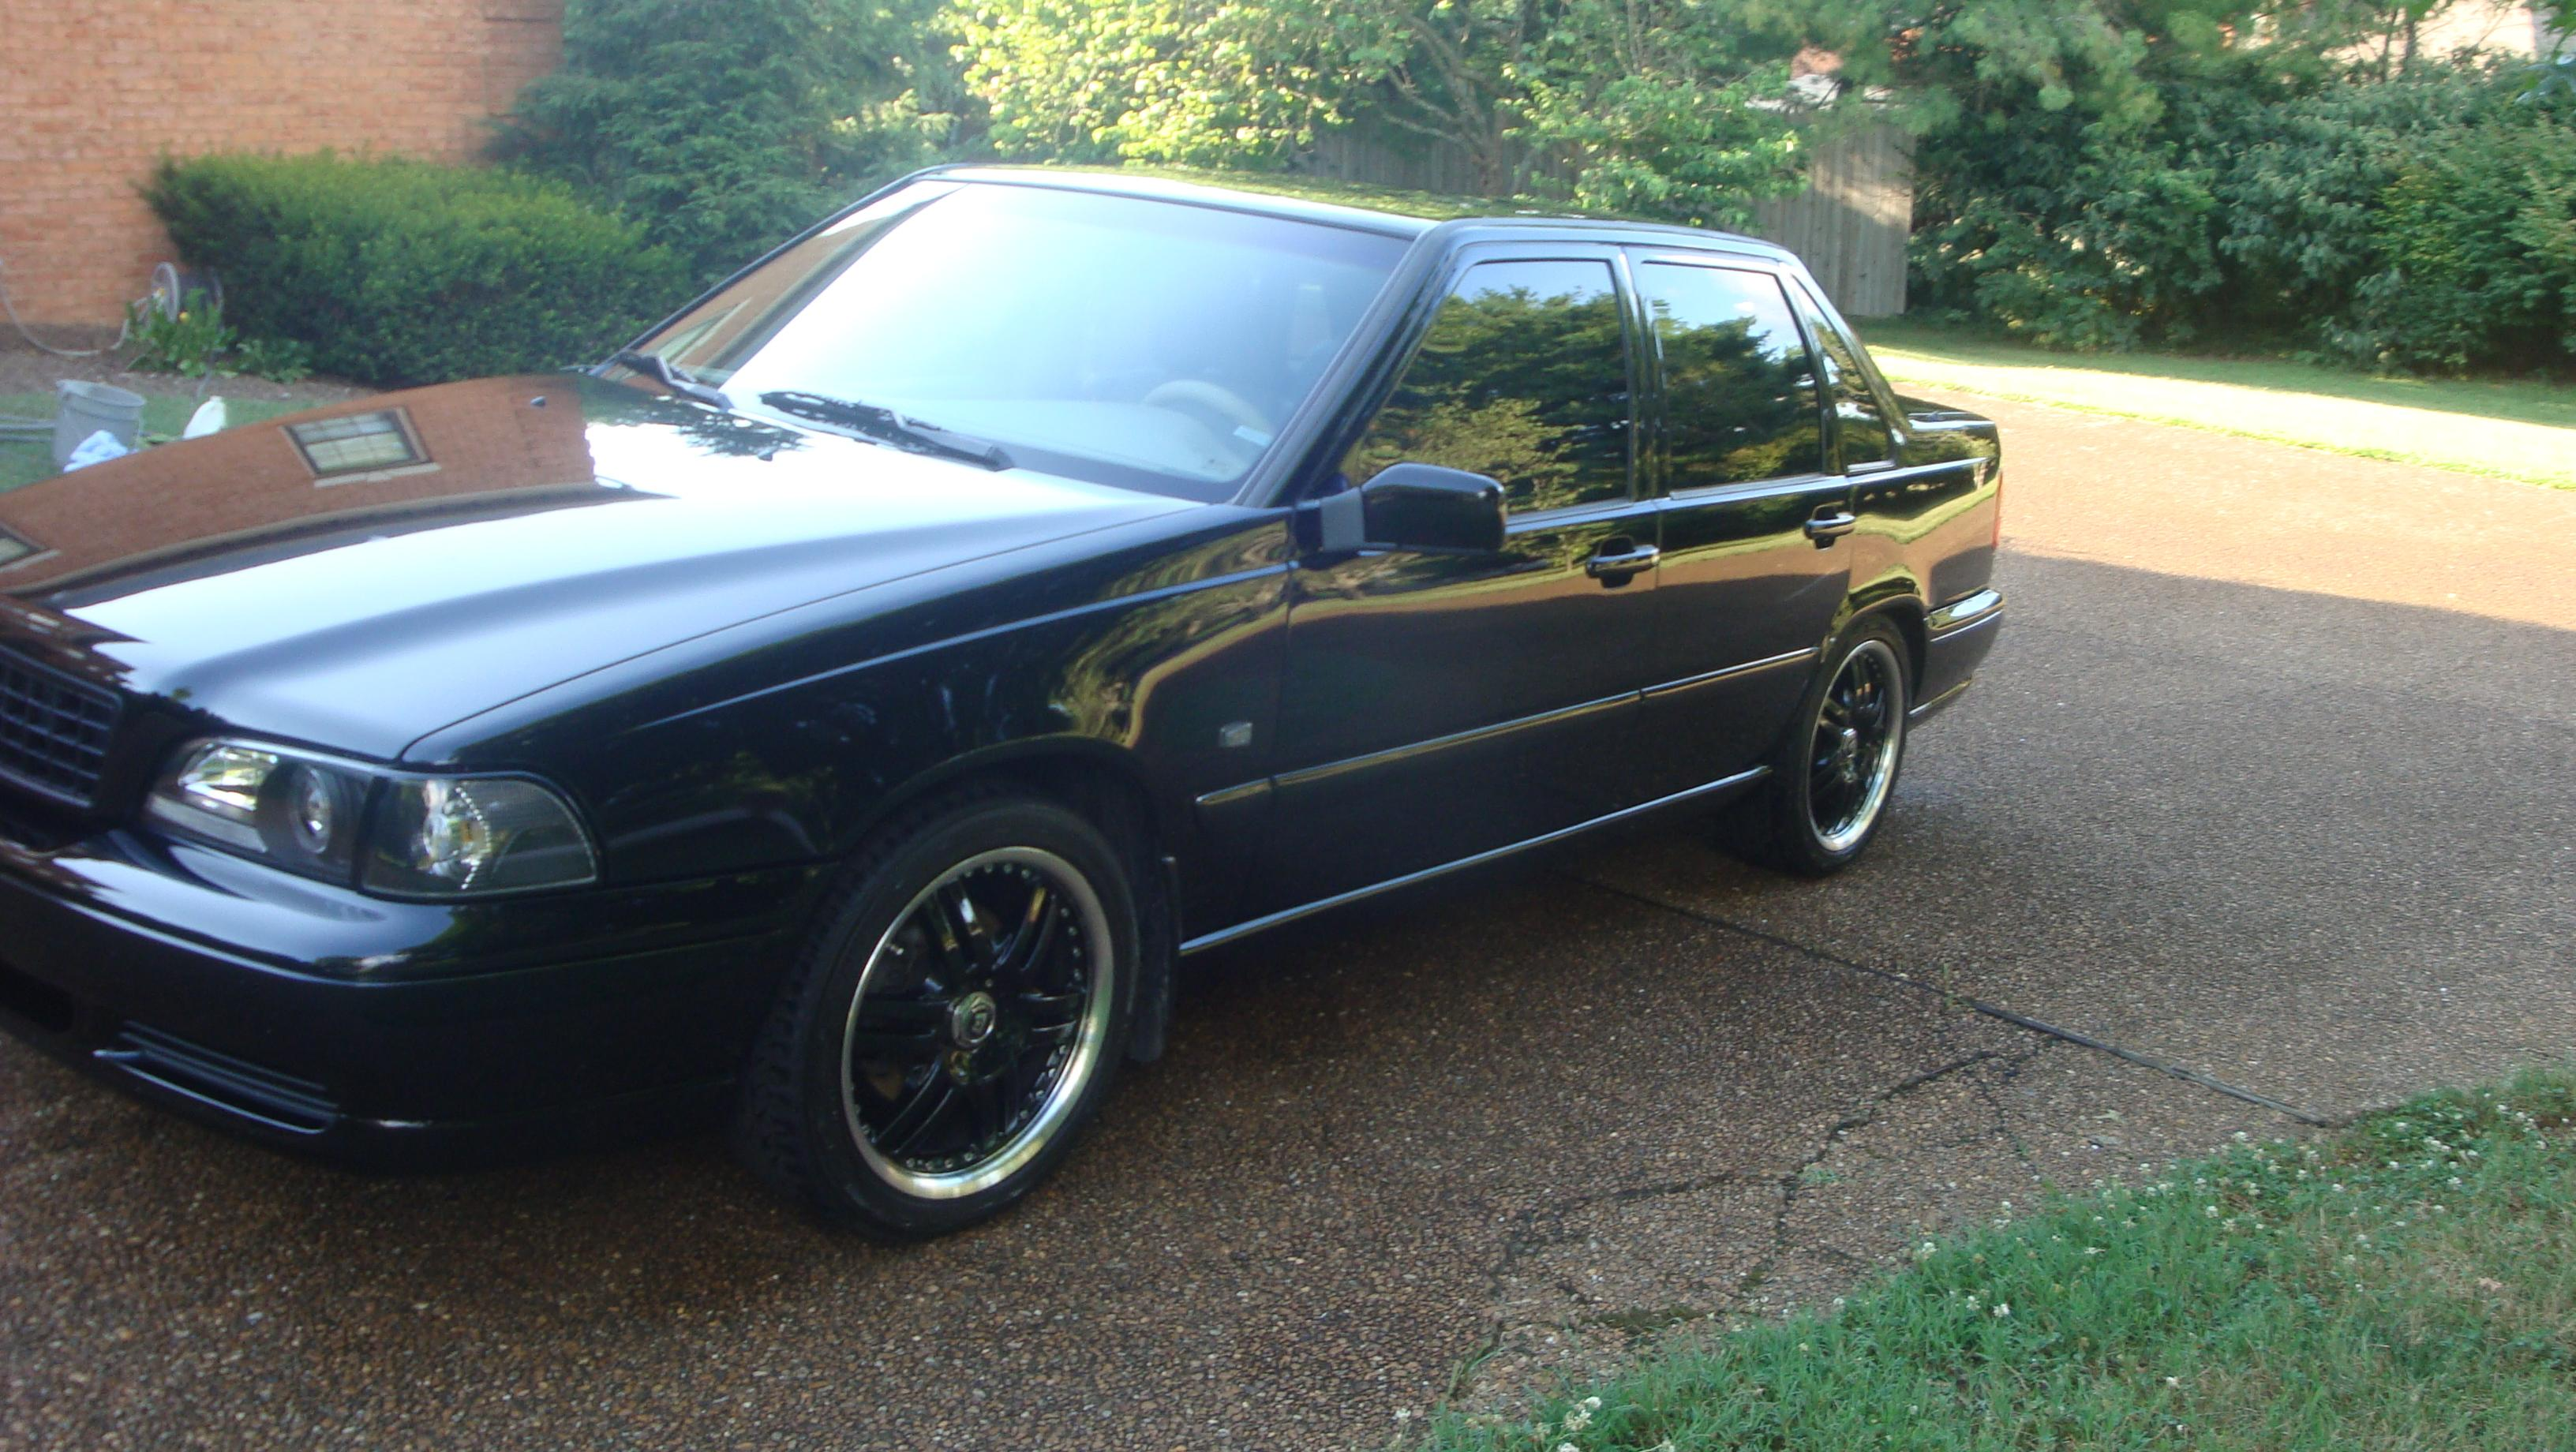 Original on 2000 Volvo S70 Horsepower